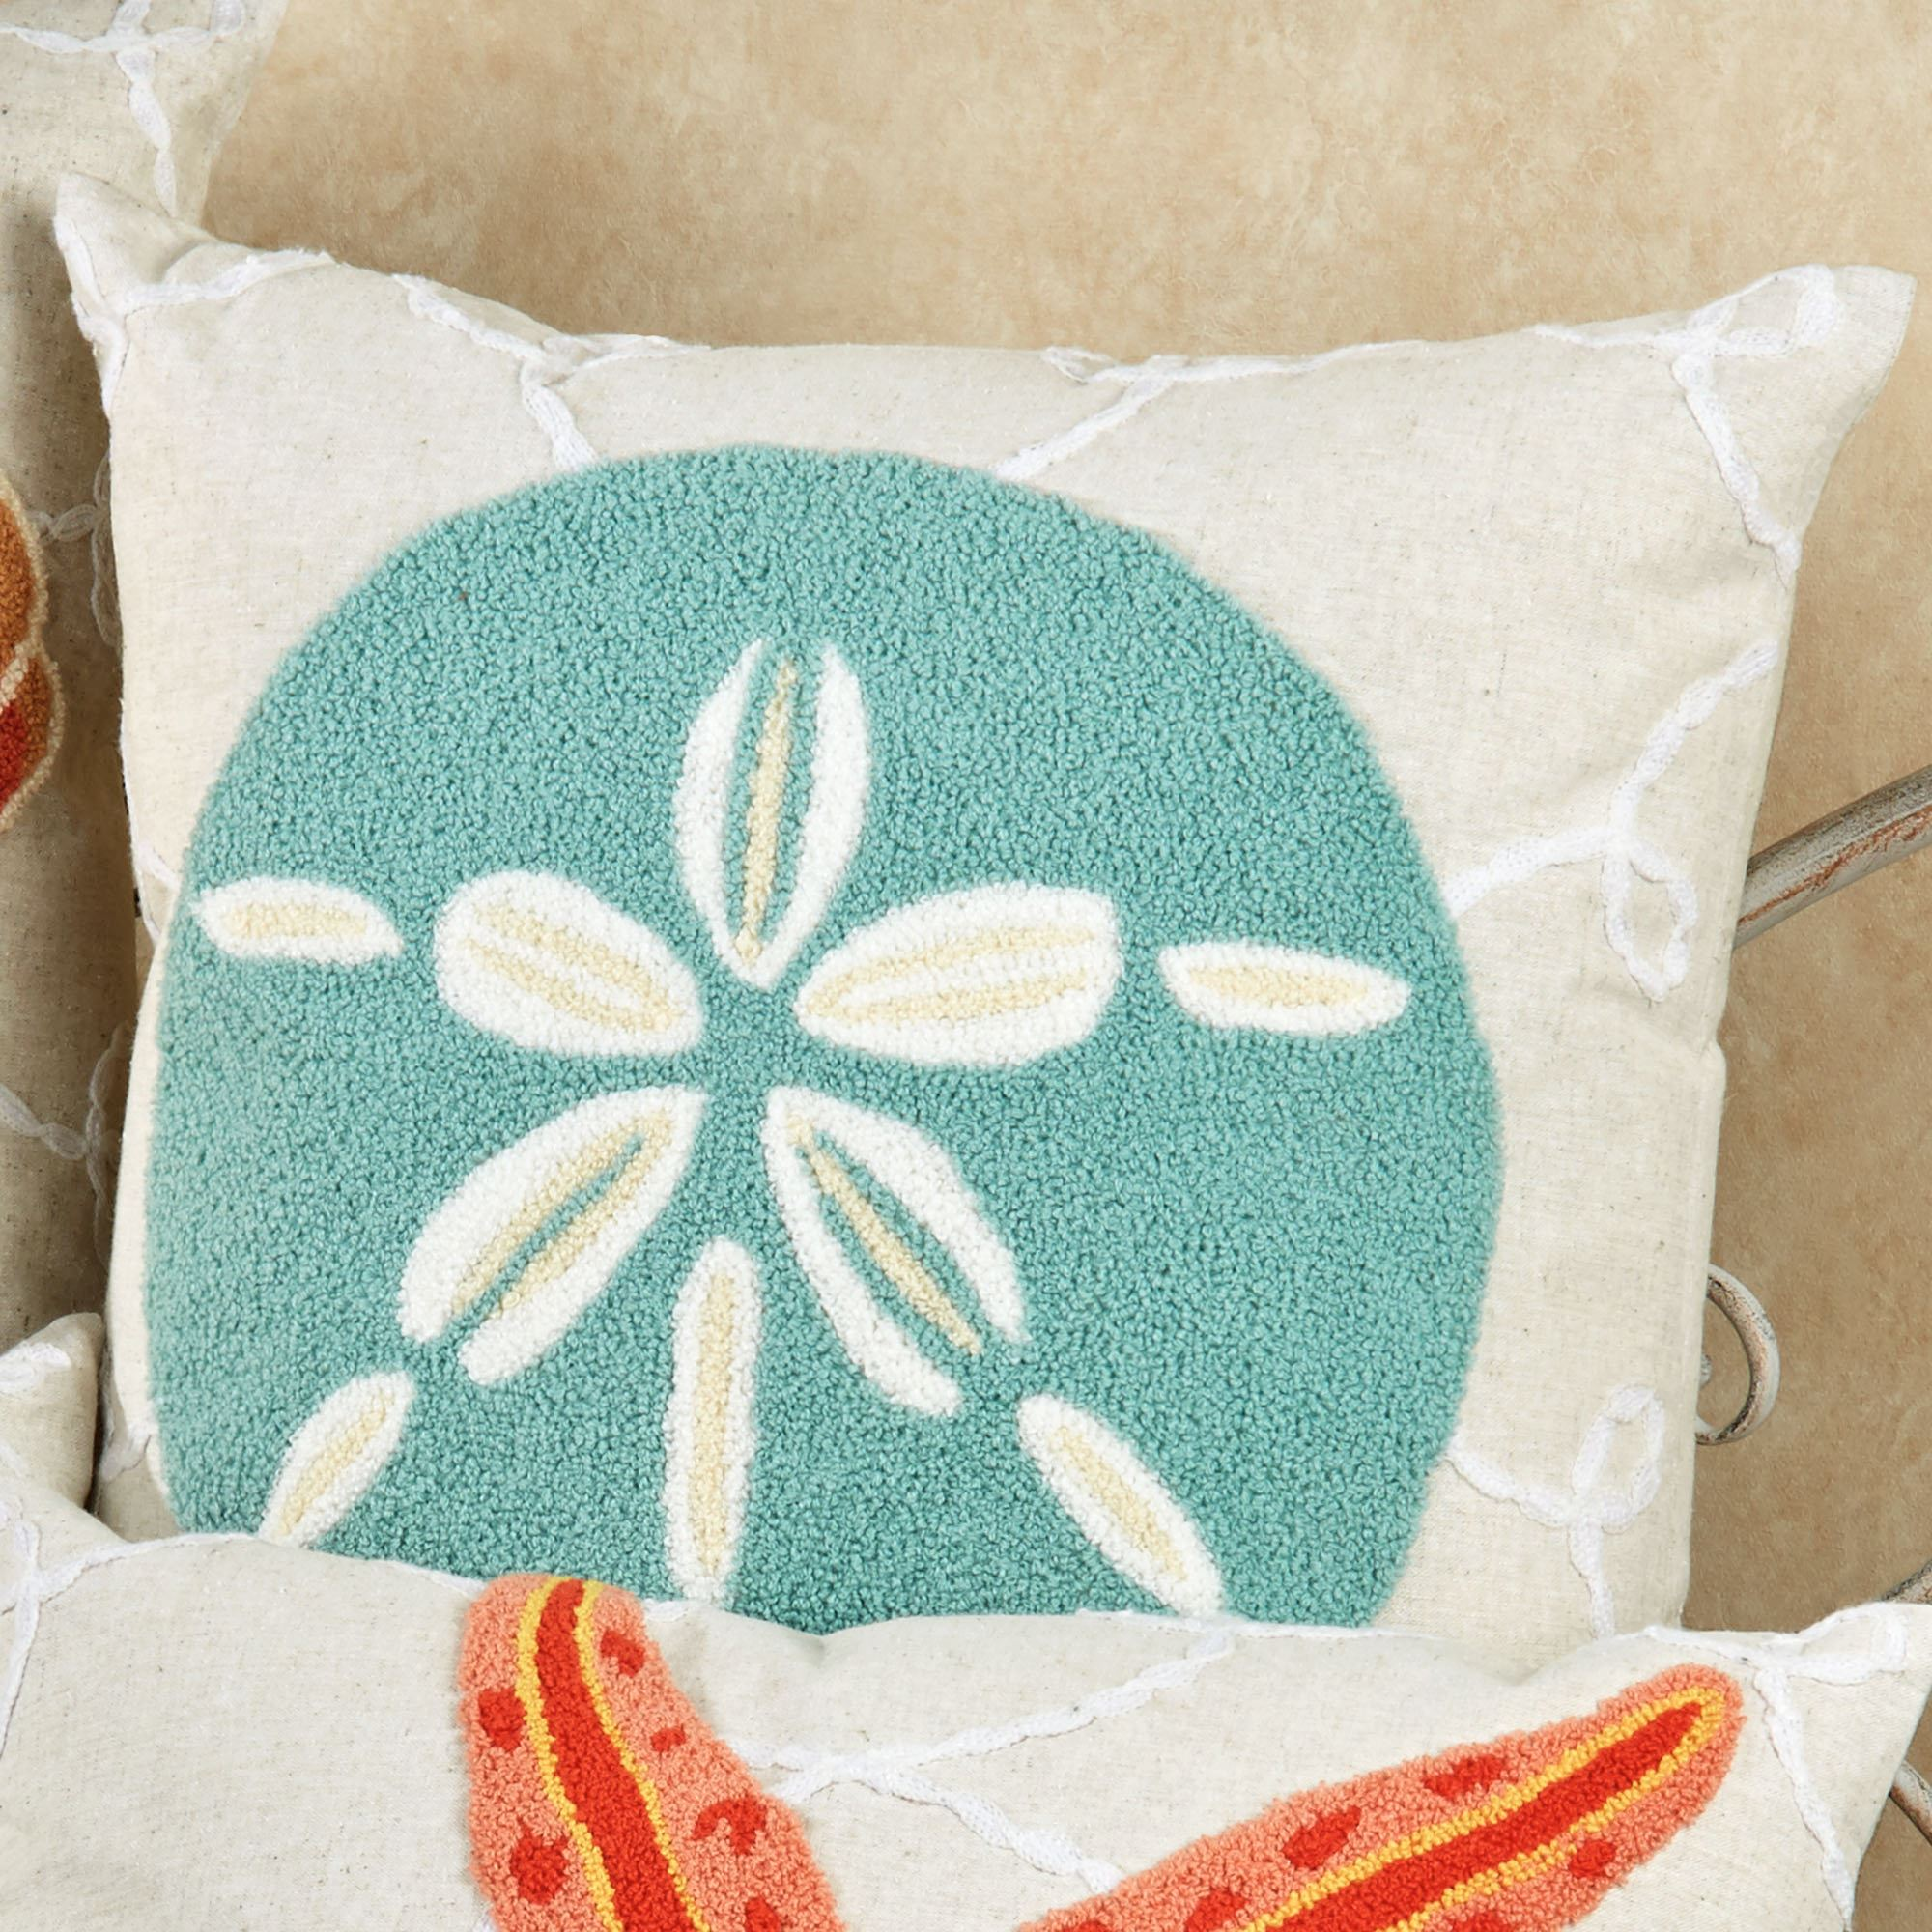 outside pillows doodles pillow beach diy stitches turq